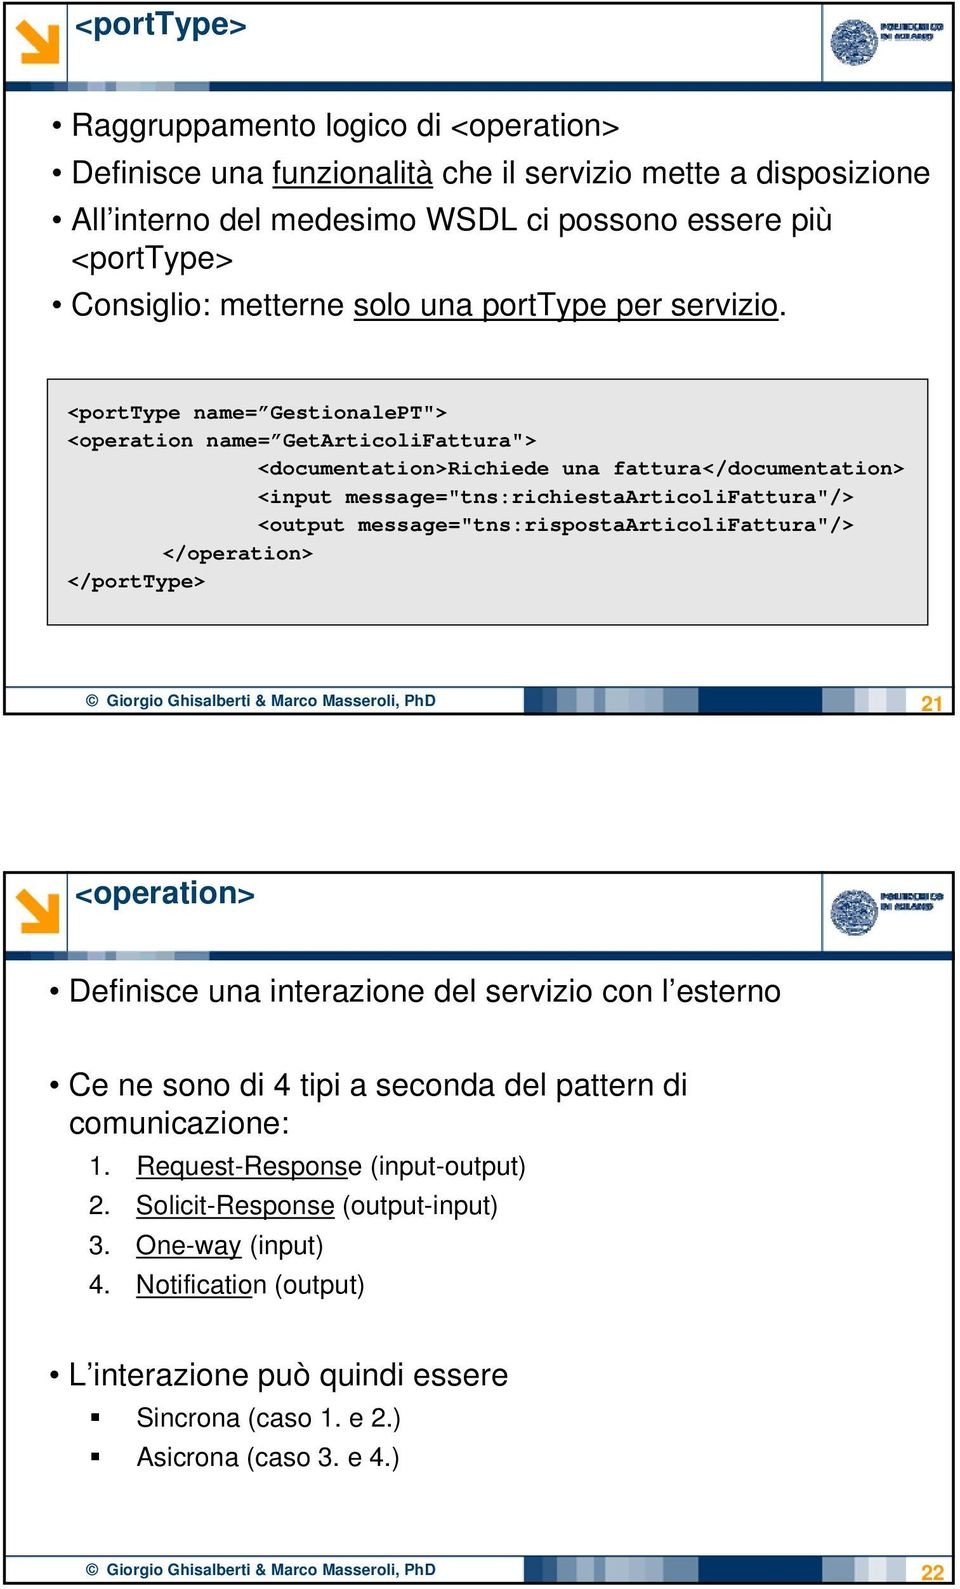 "<porttype name= GestionalePT""> <operation name= GetArticoliFattura""> <documentation>richiede una fattura</documentation> <input message=""tns:richiestaarticolifattura""/> <output"